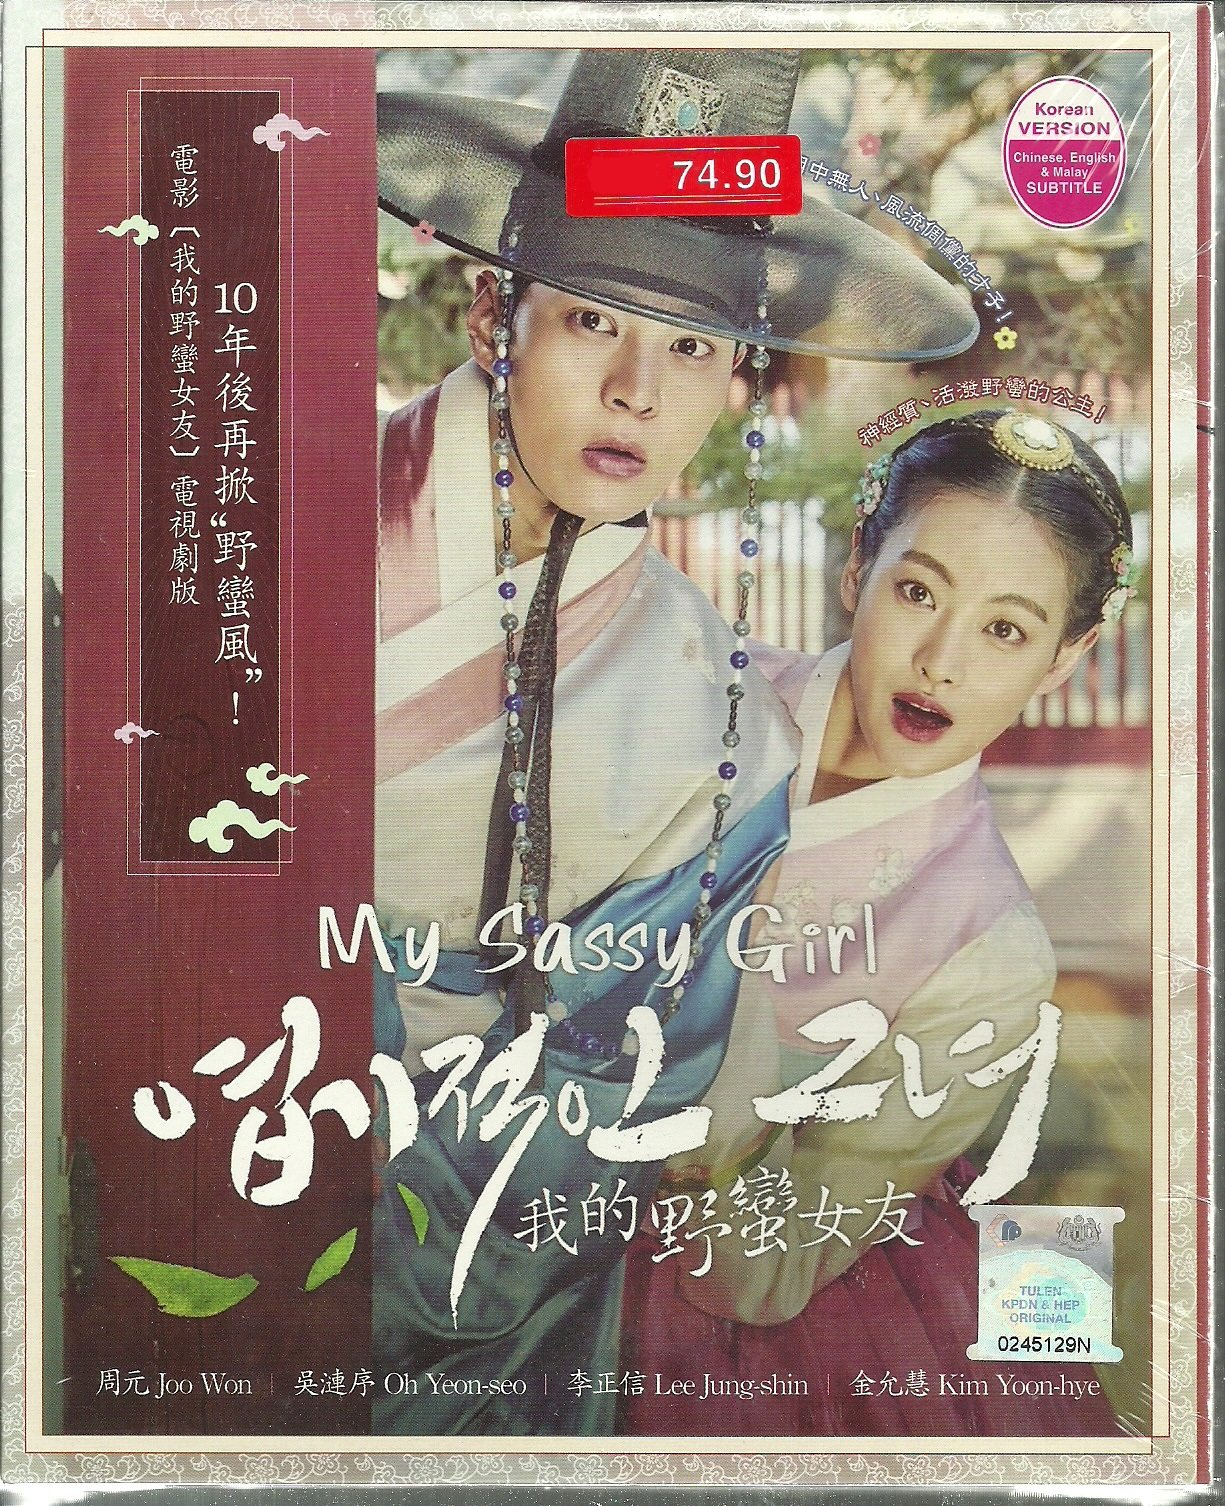 MY SASSY GIRL - COMPLETE KOREAN TV SERIES ( 1-32 EPISODES ) DVD BOX SETS by